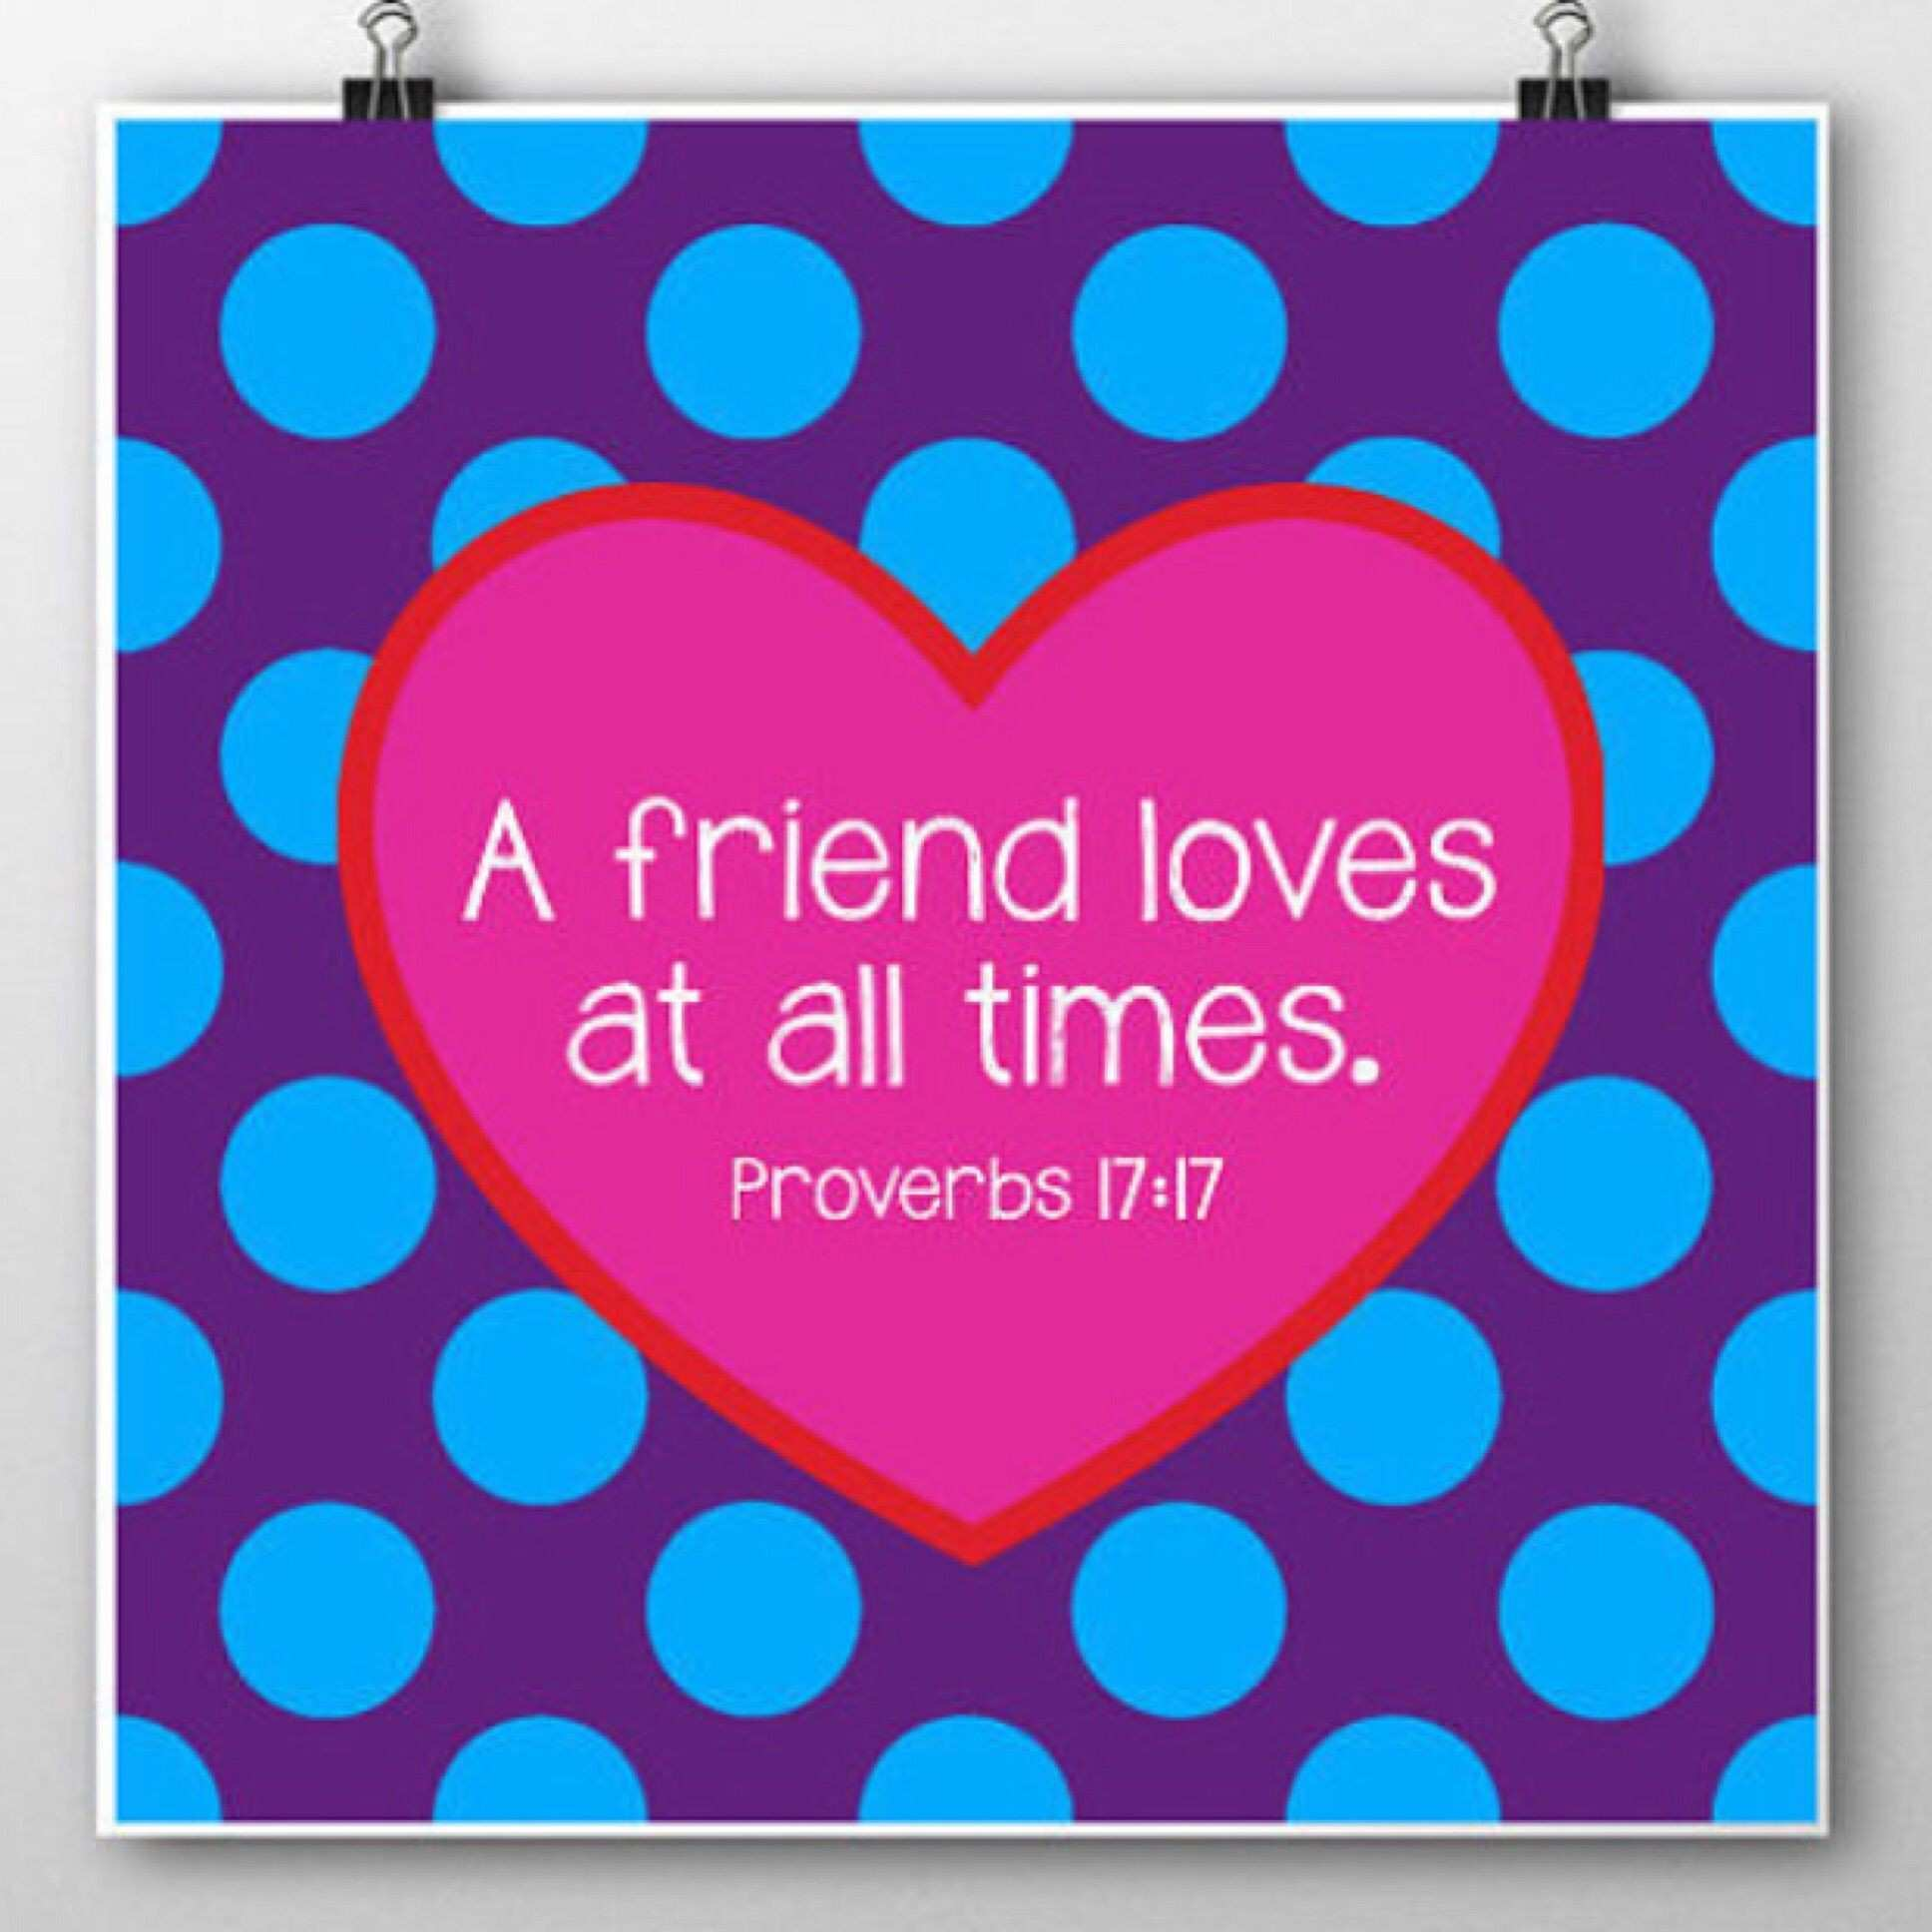 Proverbs 17 17 printable wall art will print any SQUARE size 4